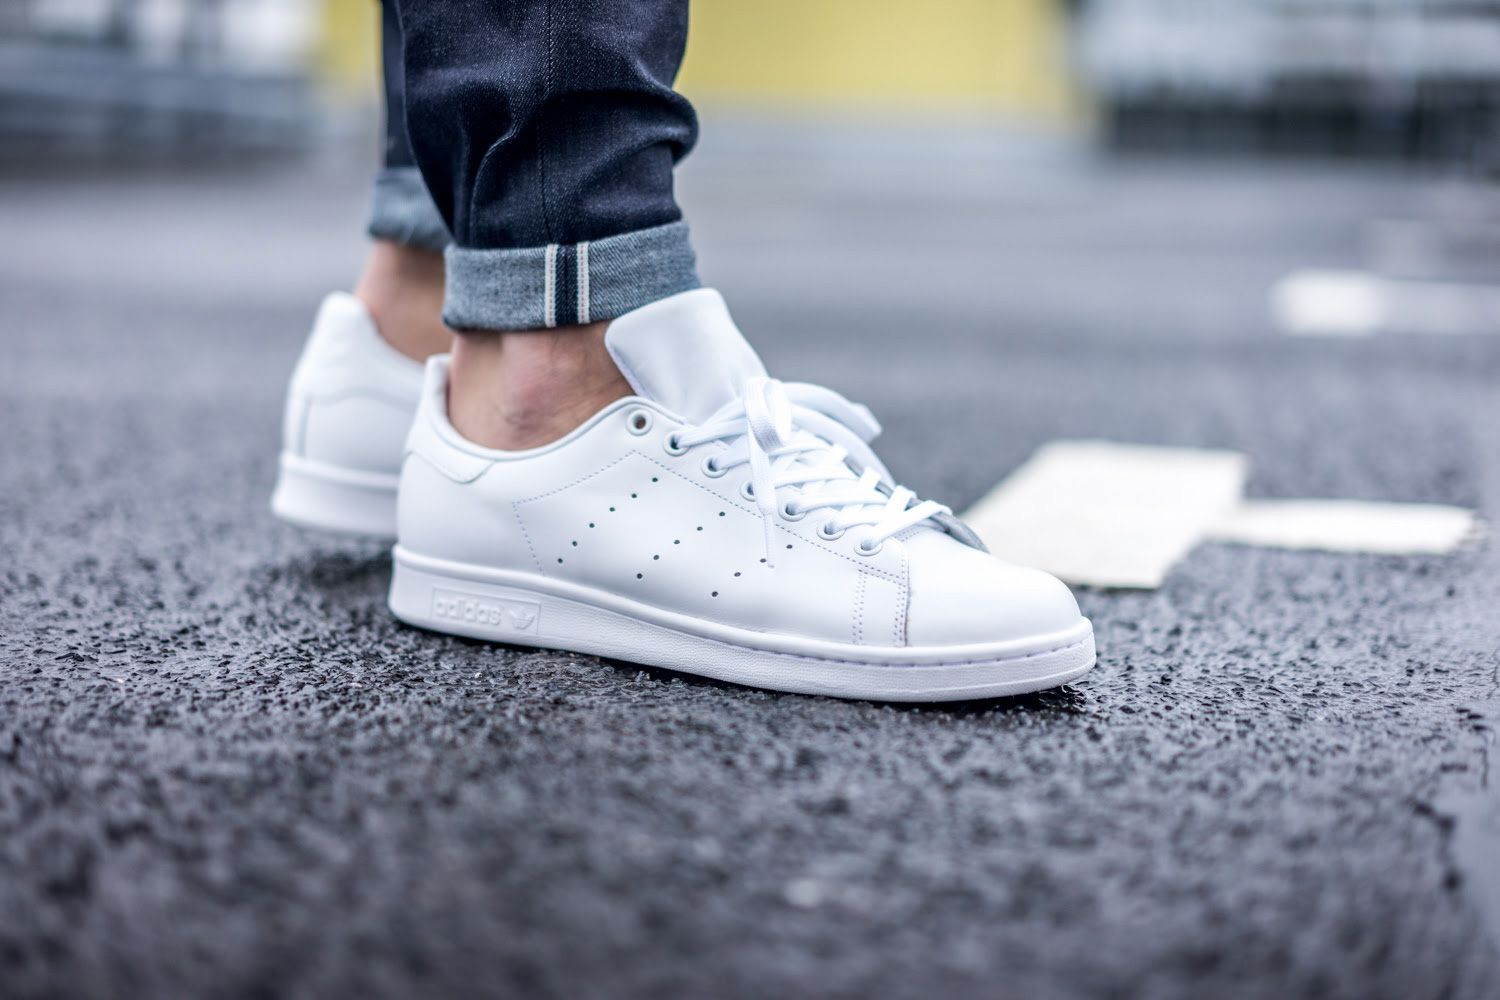 separation shoes f3d53 c724e The adidas Stan Smith has undoubtedly experienced a resurgence from the  Three Stripes over the past year or so.